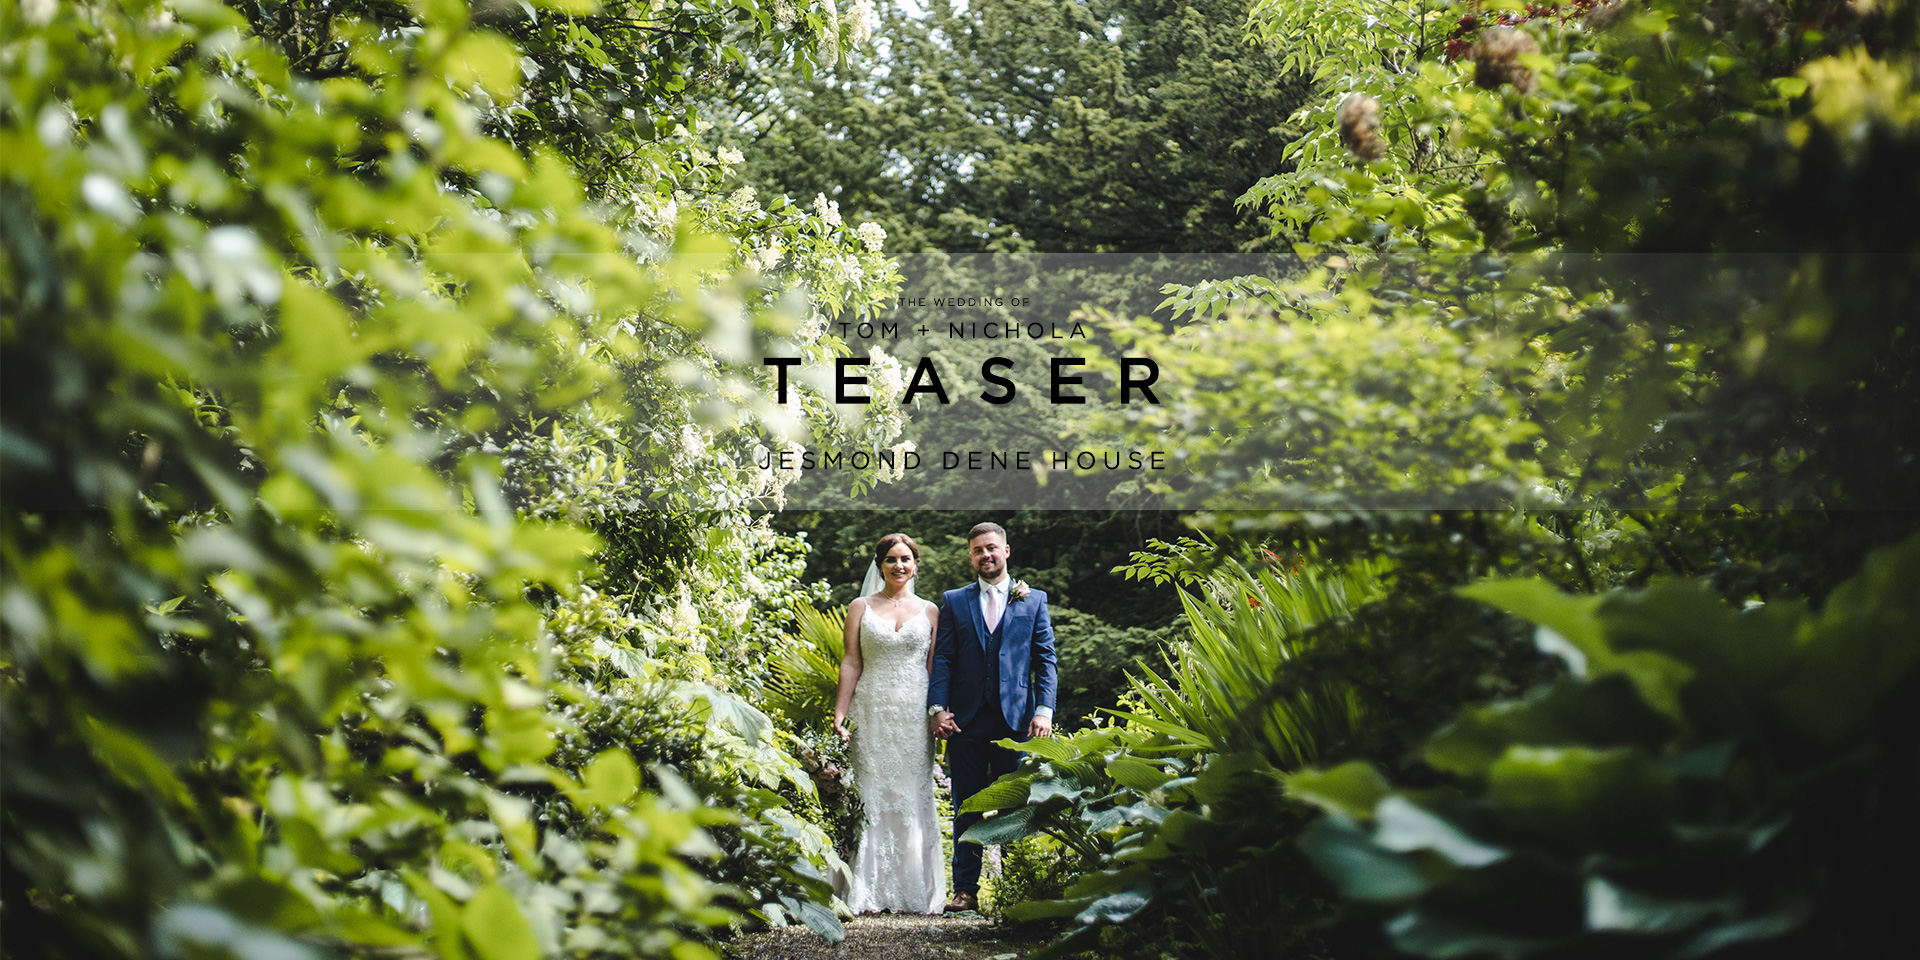 Tom Nichola Jesmond Dene House Wedding Videography